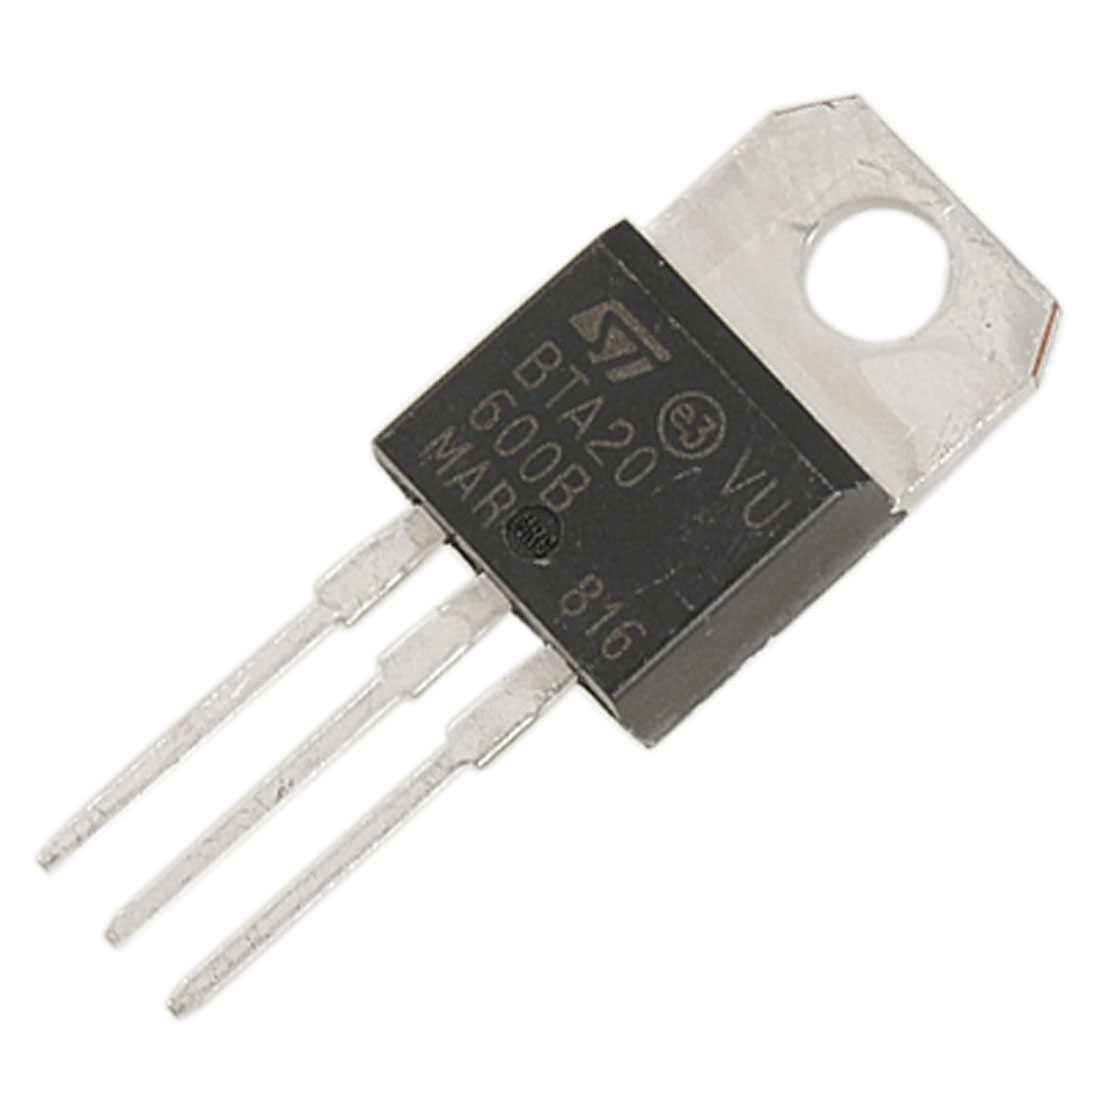 BTA20-600B 600V 20A Silicon Controlled Rectifier Snubberless Triacs